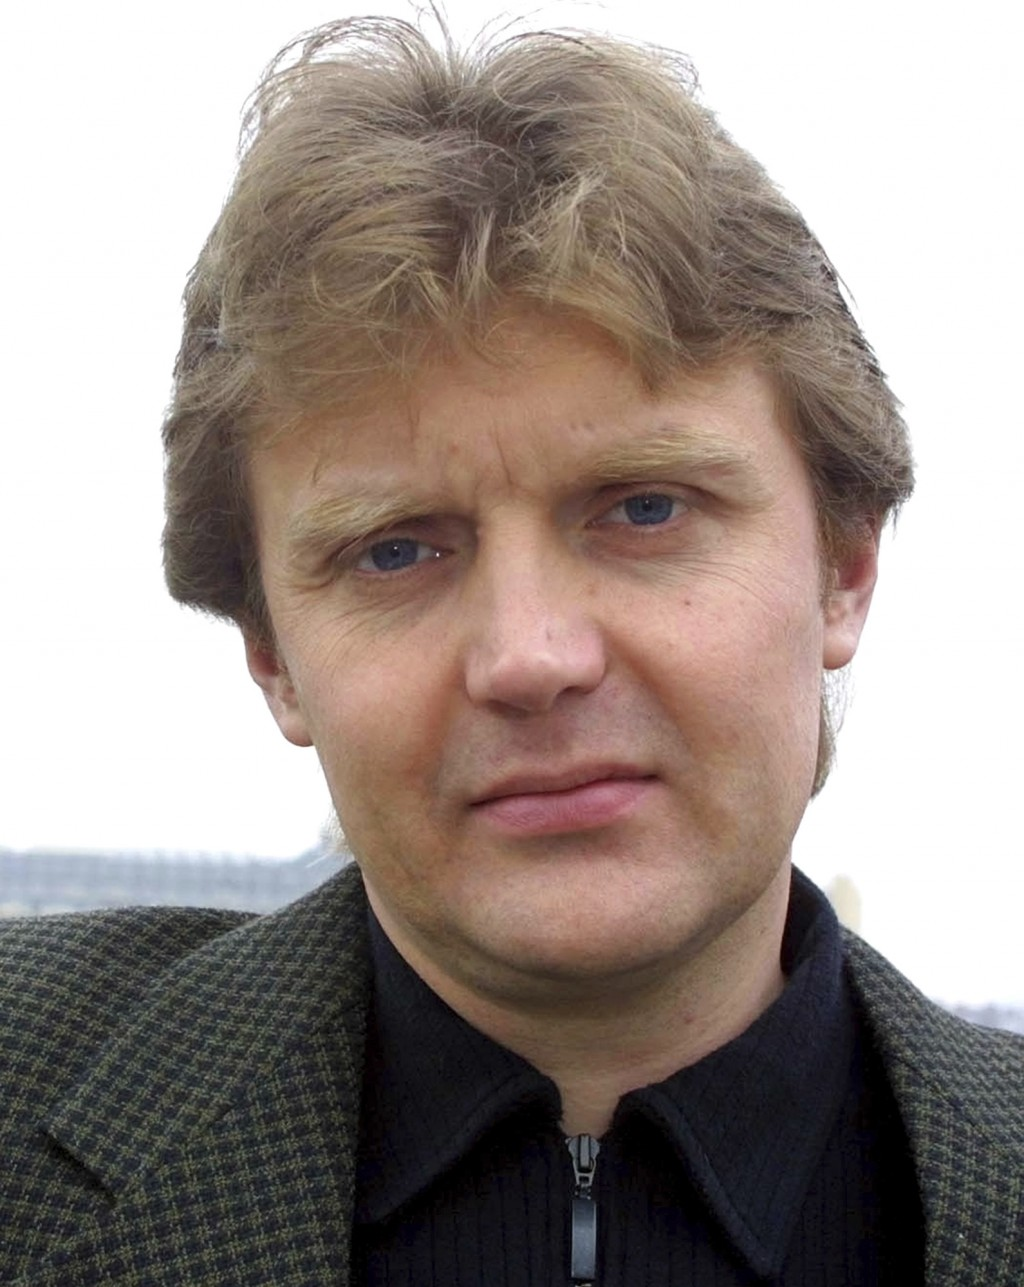 FILE - In this May 10, 2002 file photo, Alexander Litvinenko, former KGB spy is photographed at his home in London. Litvinenko, who defected to Britai